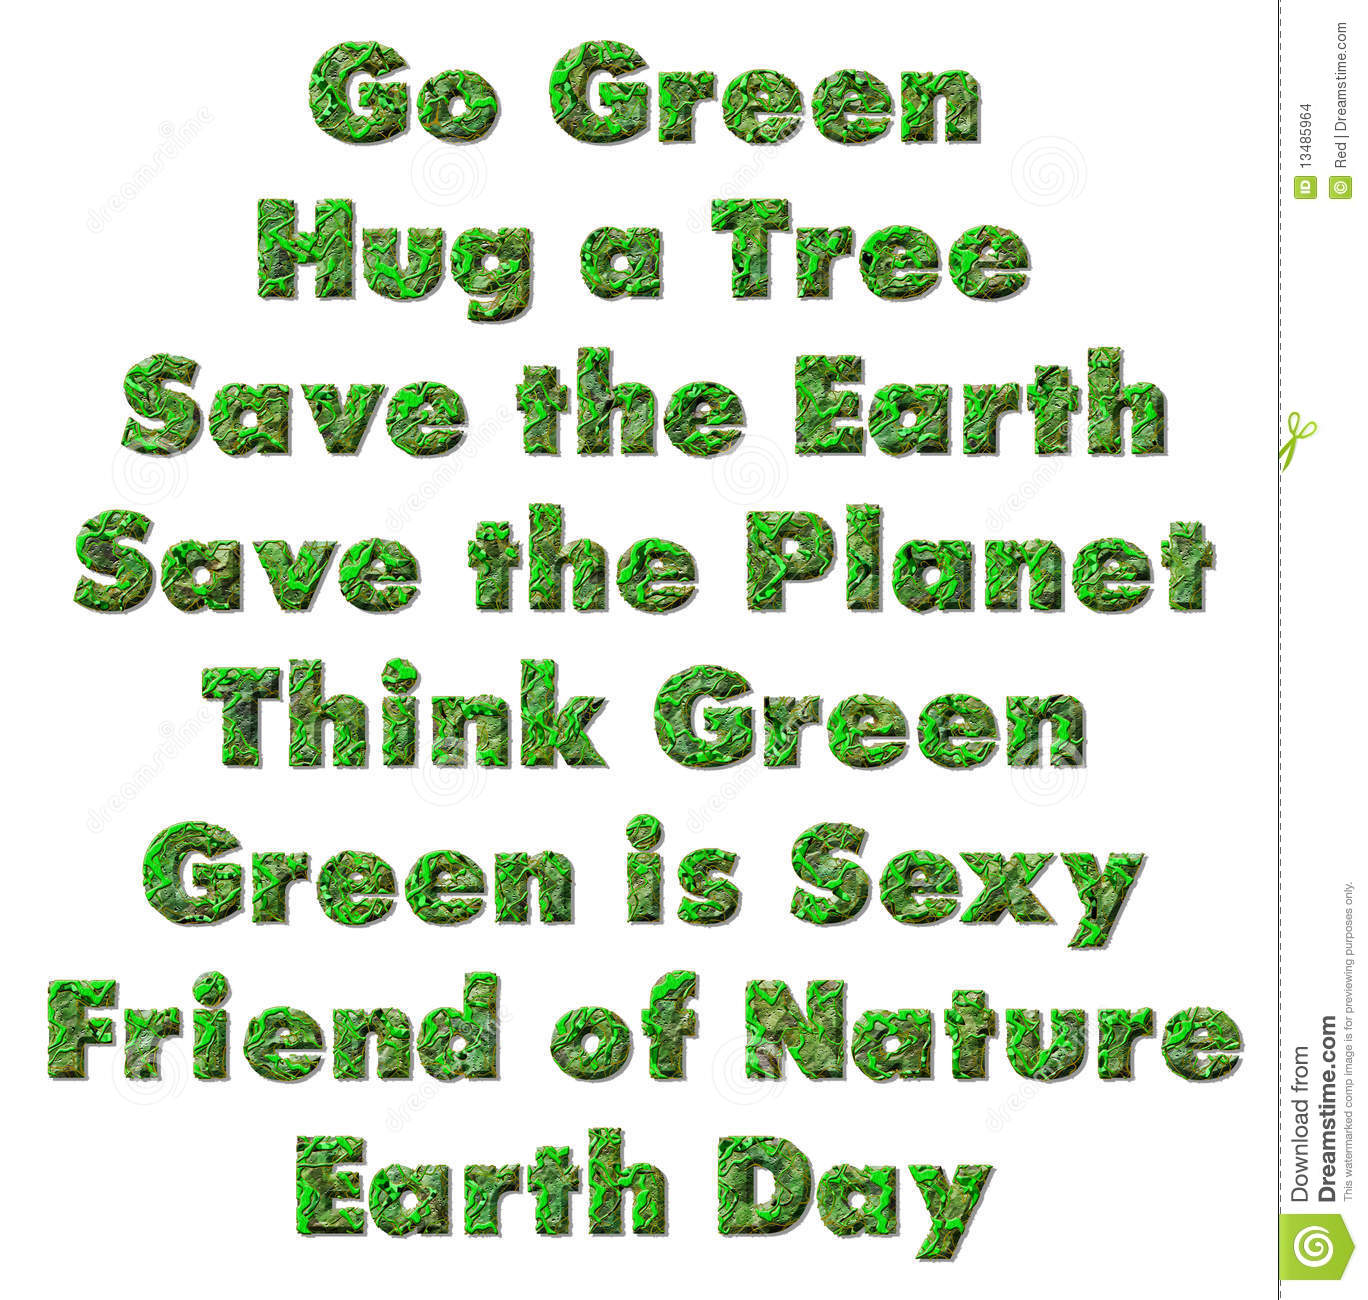 Save Trees Slogans in English http://www.dreamstime.com/stock-images-green-environment-words-image13485964